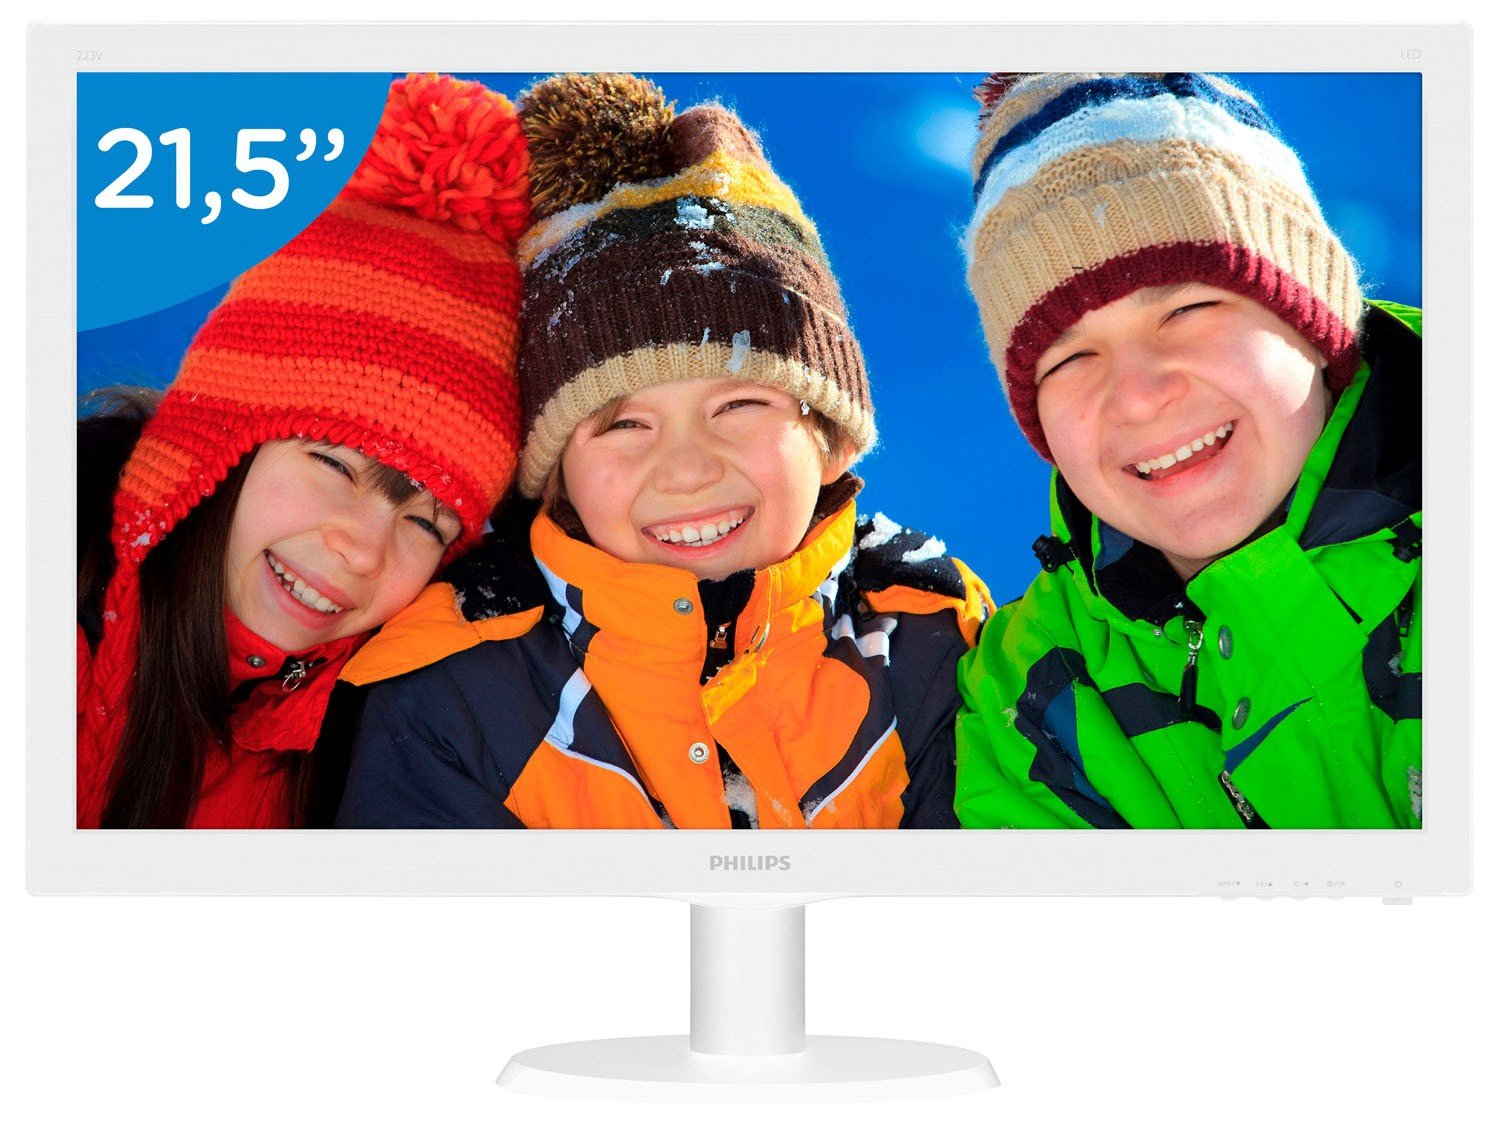 Foto 1 - Monitor para PC Full HD Philips LCD Widescreen - 21,5 223V5LHSW